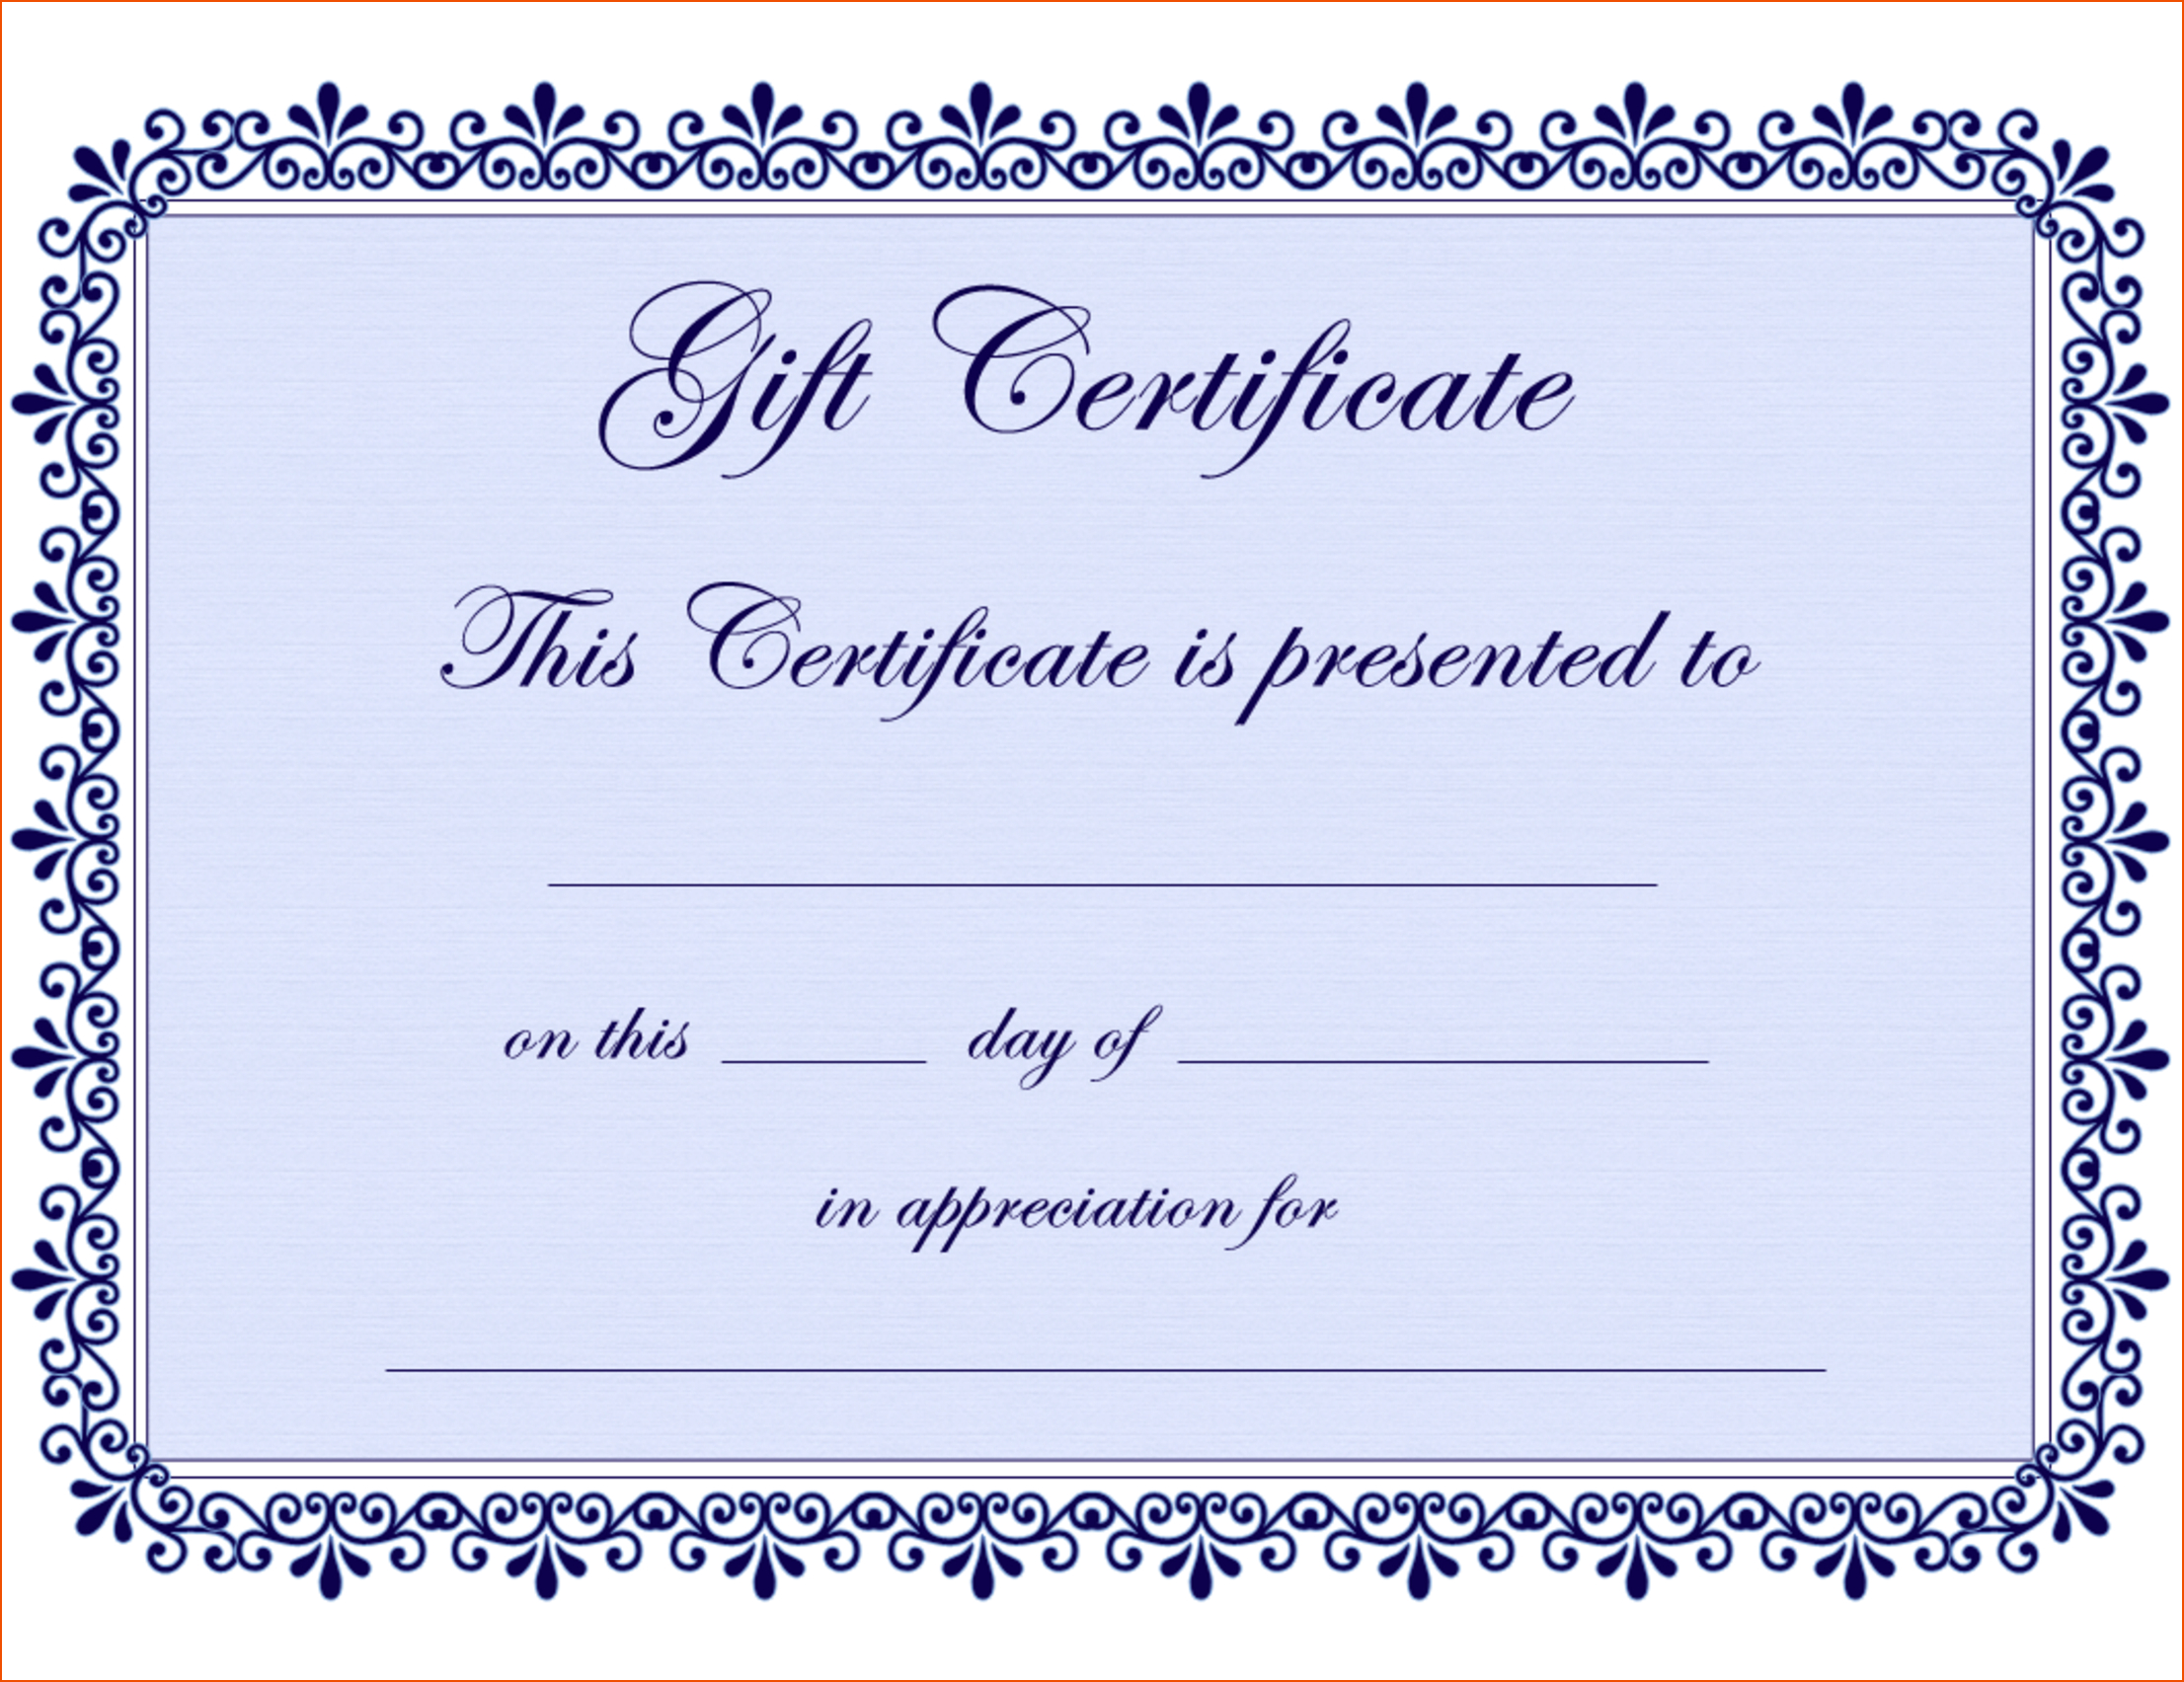 Certificate Template Blank Best Photos Of Microsoft Blank For Blank Certificate Templates Free Download